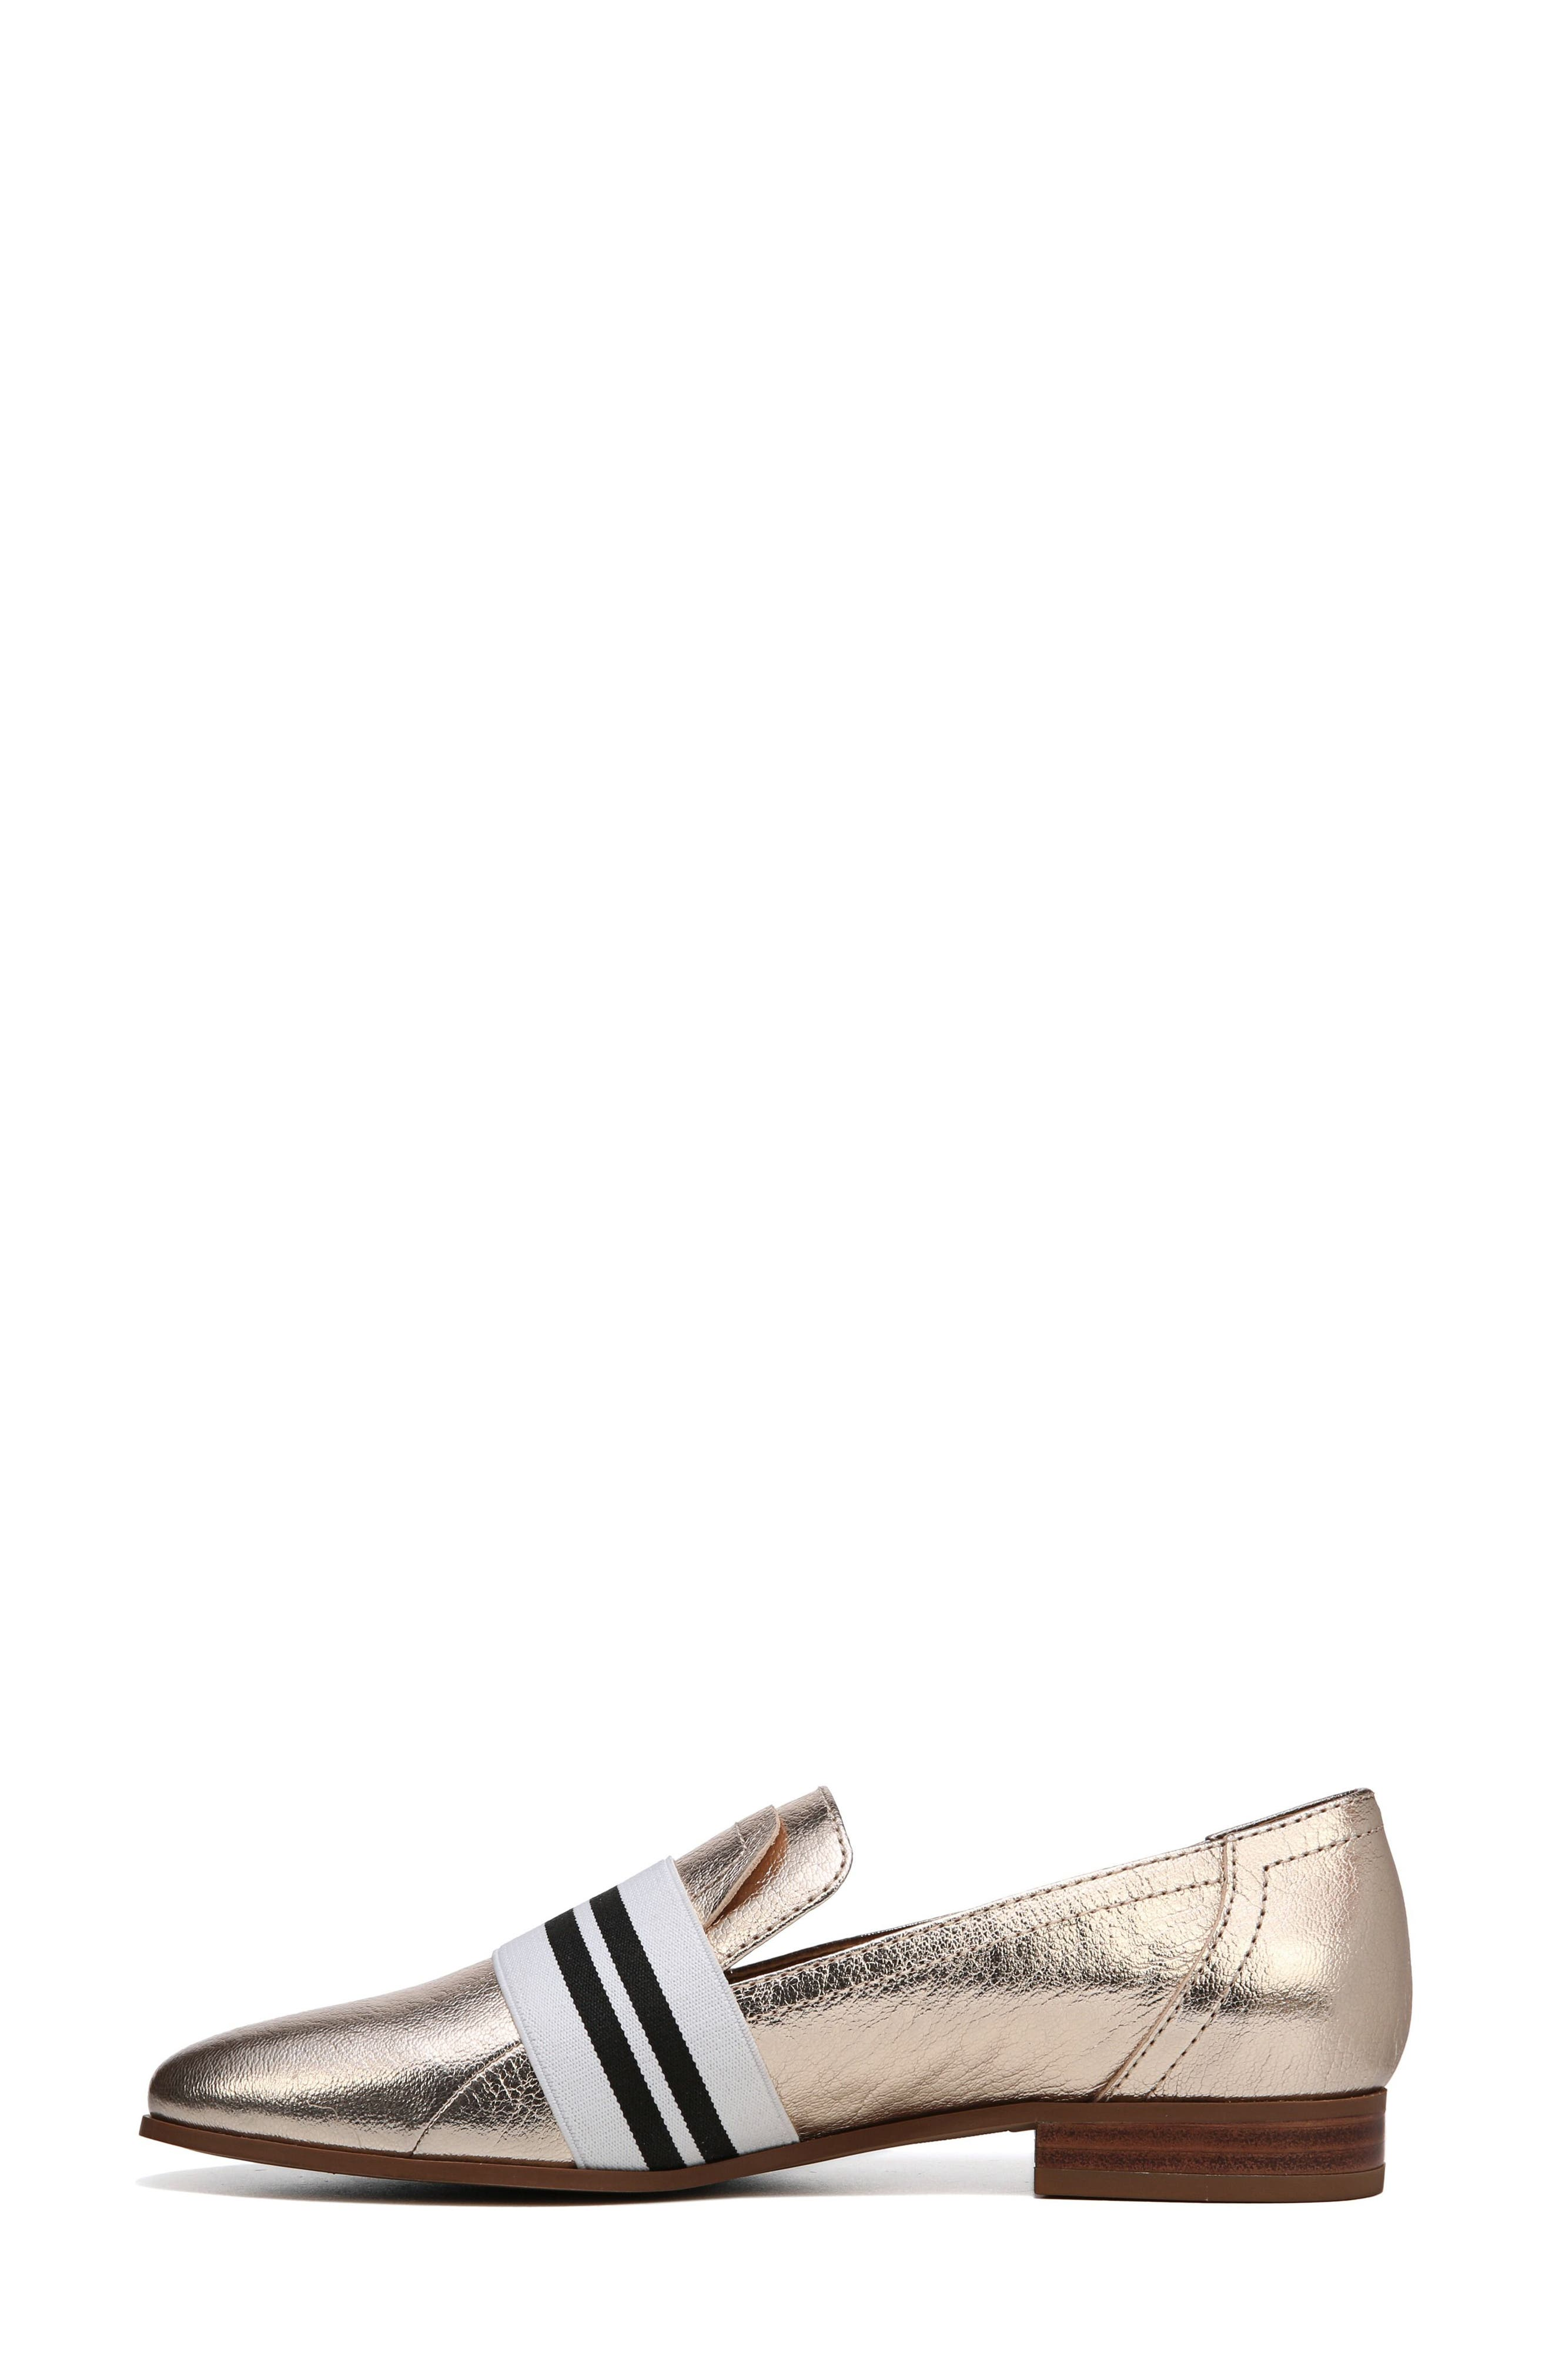 Odyssey Loafer,                             Alternate thumbnail 3, color,                             PLATINO LEATHER